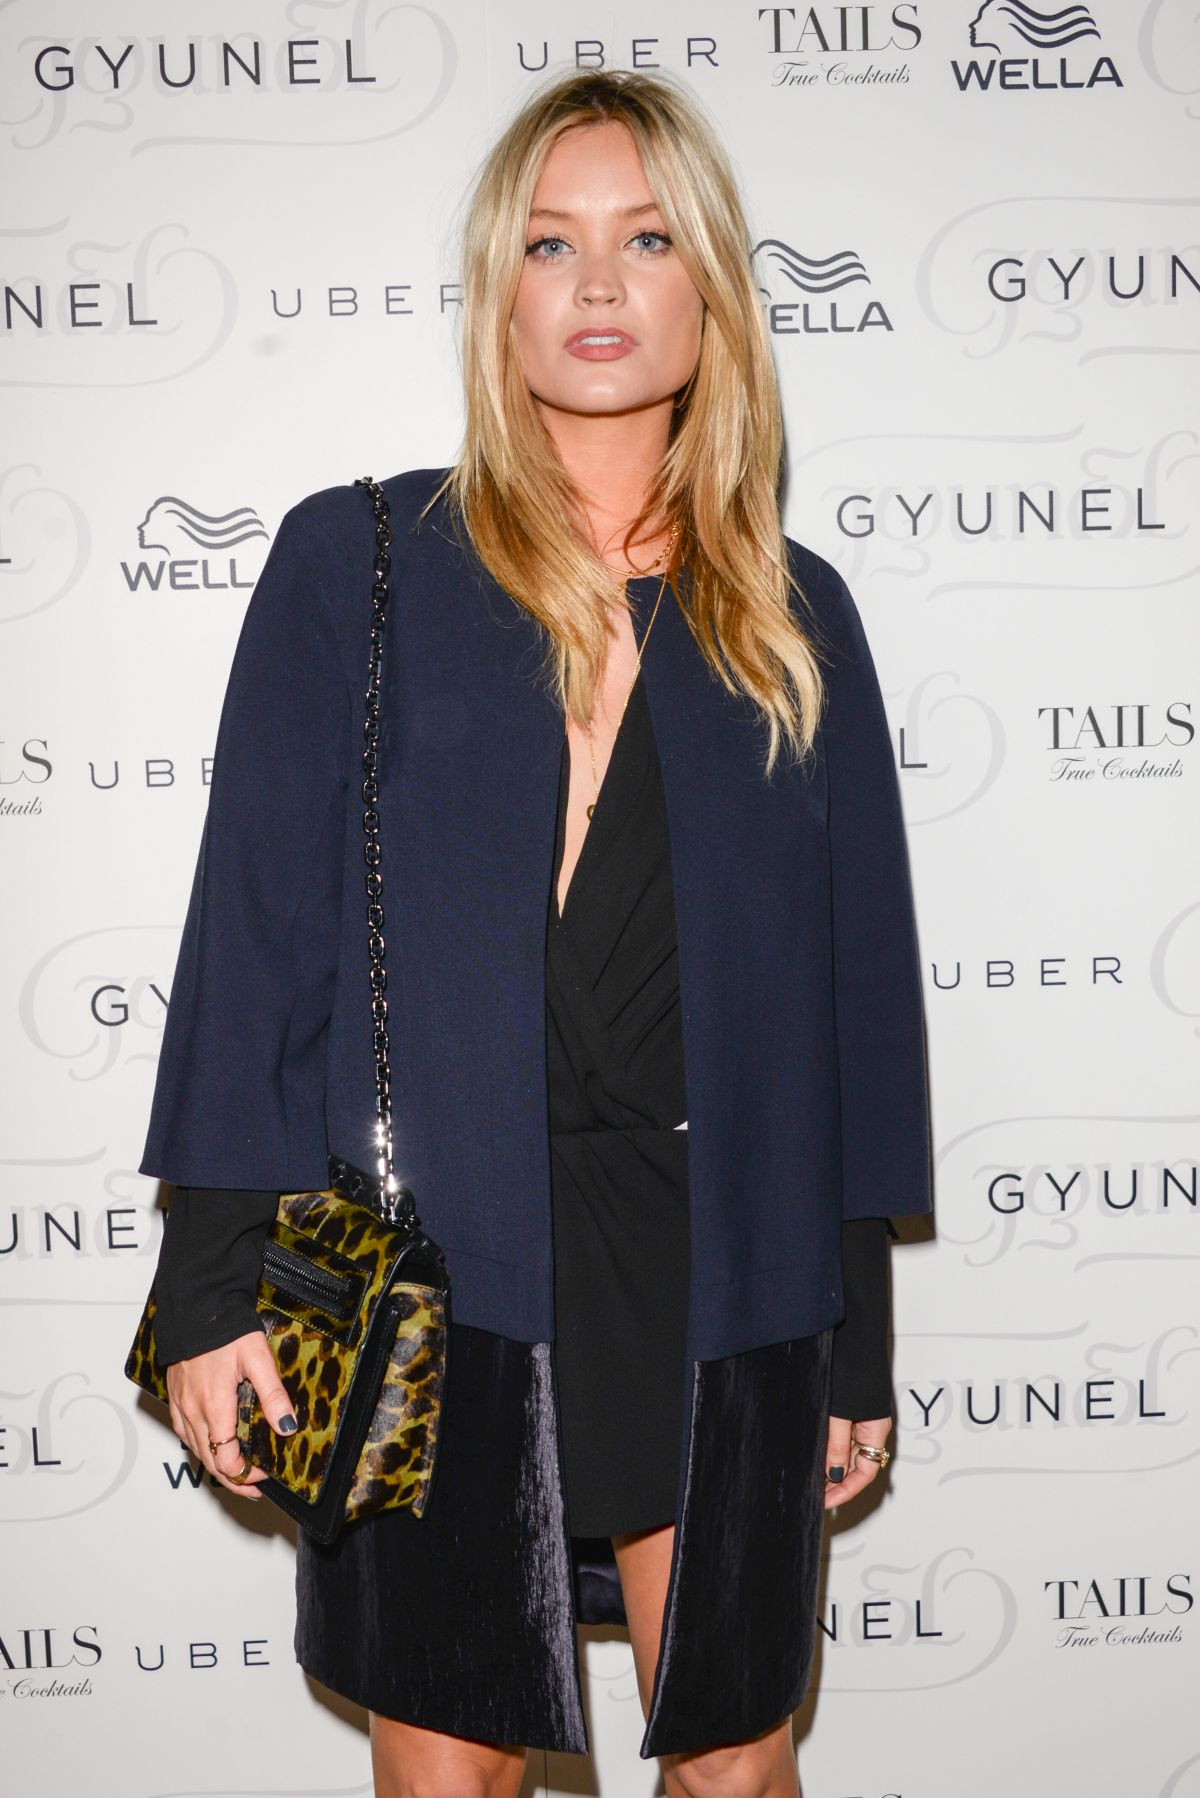 LAURA WHITMORE at Gyunel Fashion Show in London